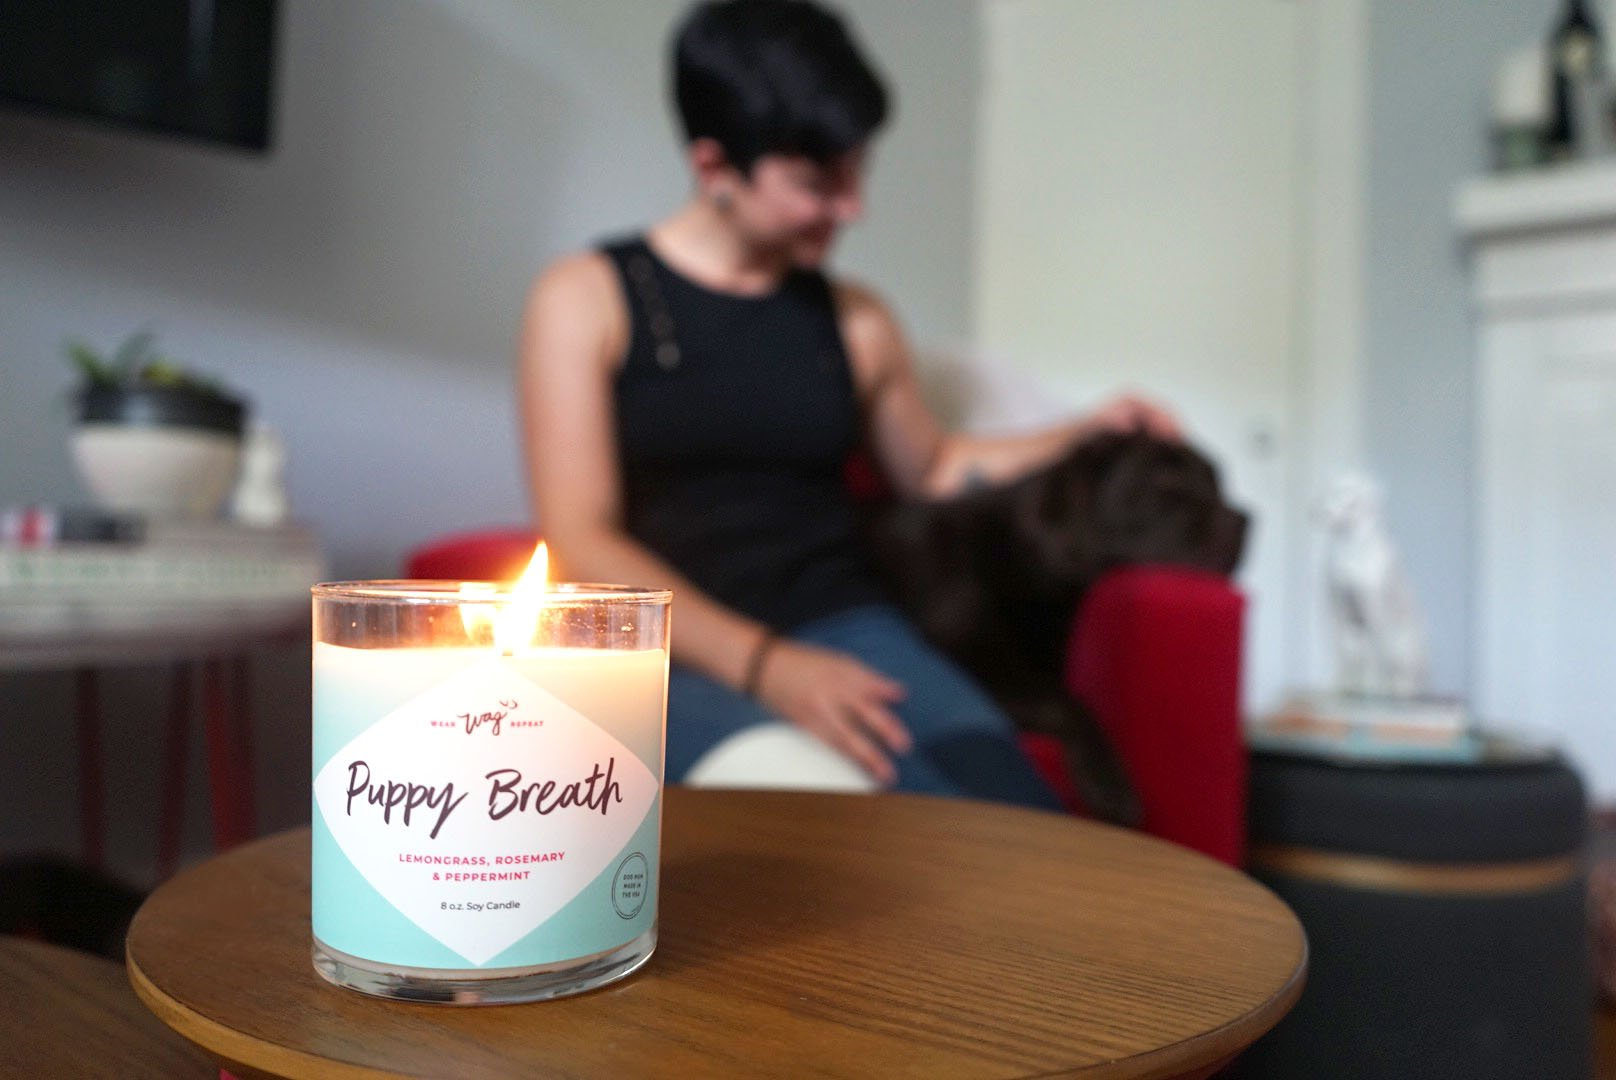 Puppy_Breath_Candle_at_Home_1024x1024@2x.jpg